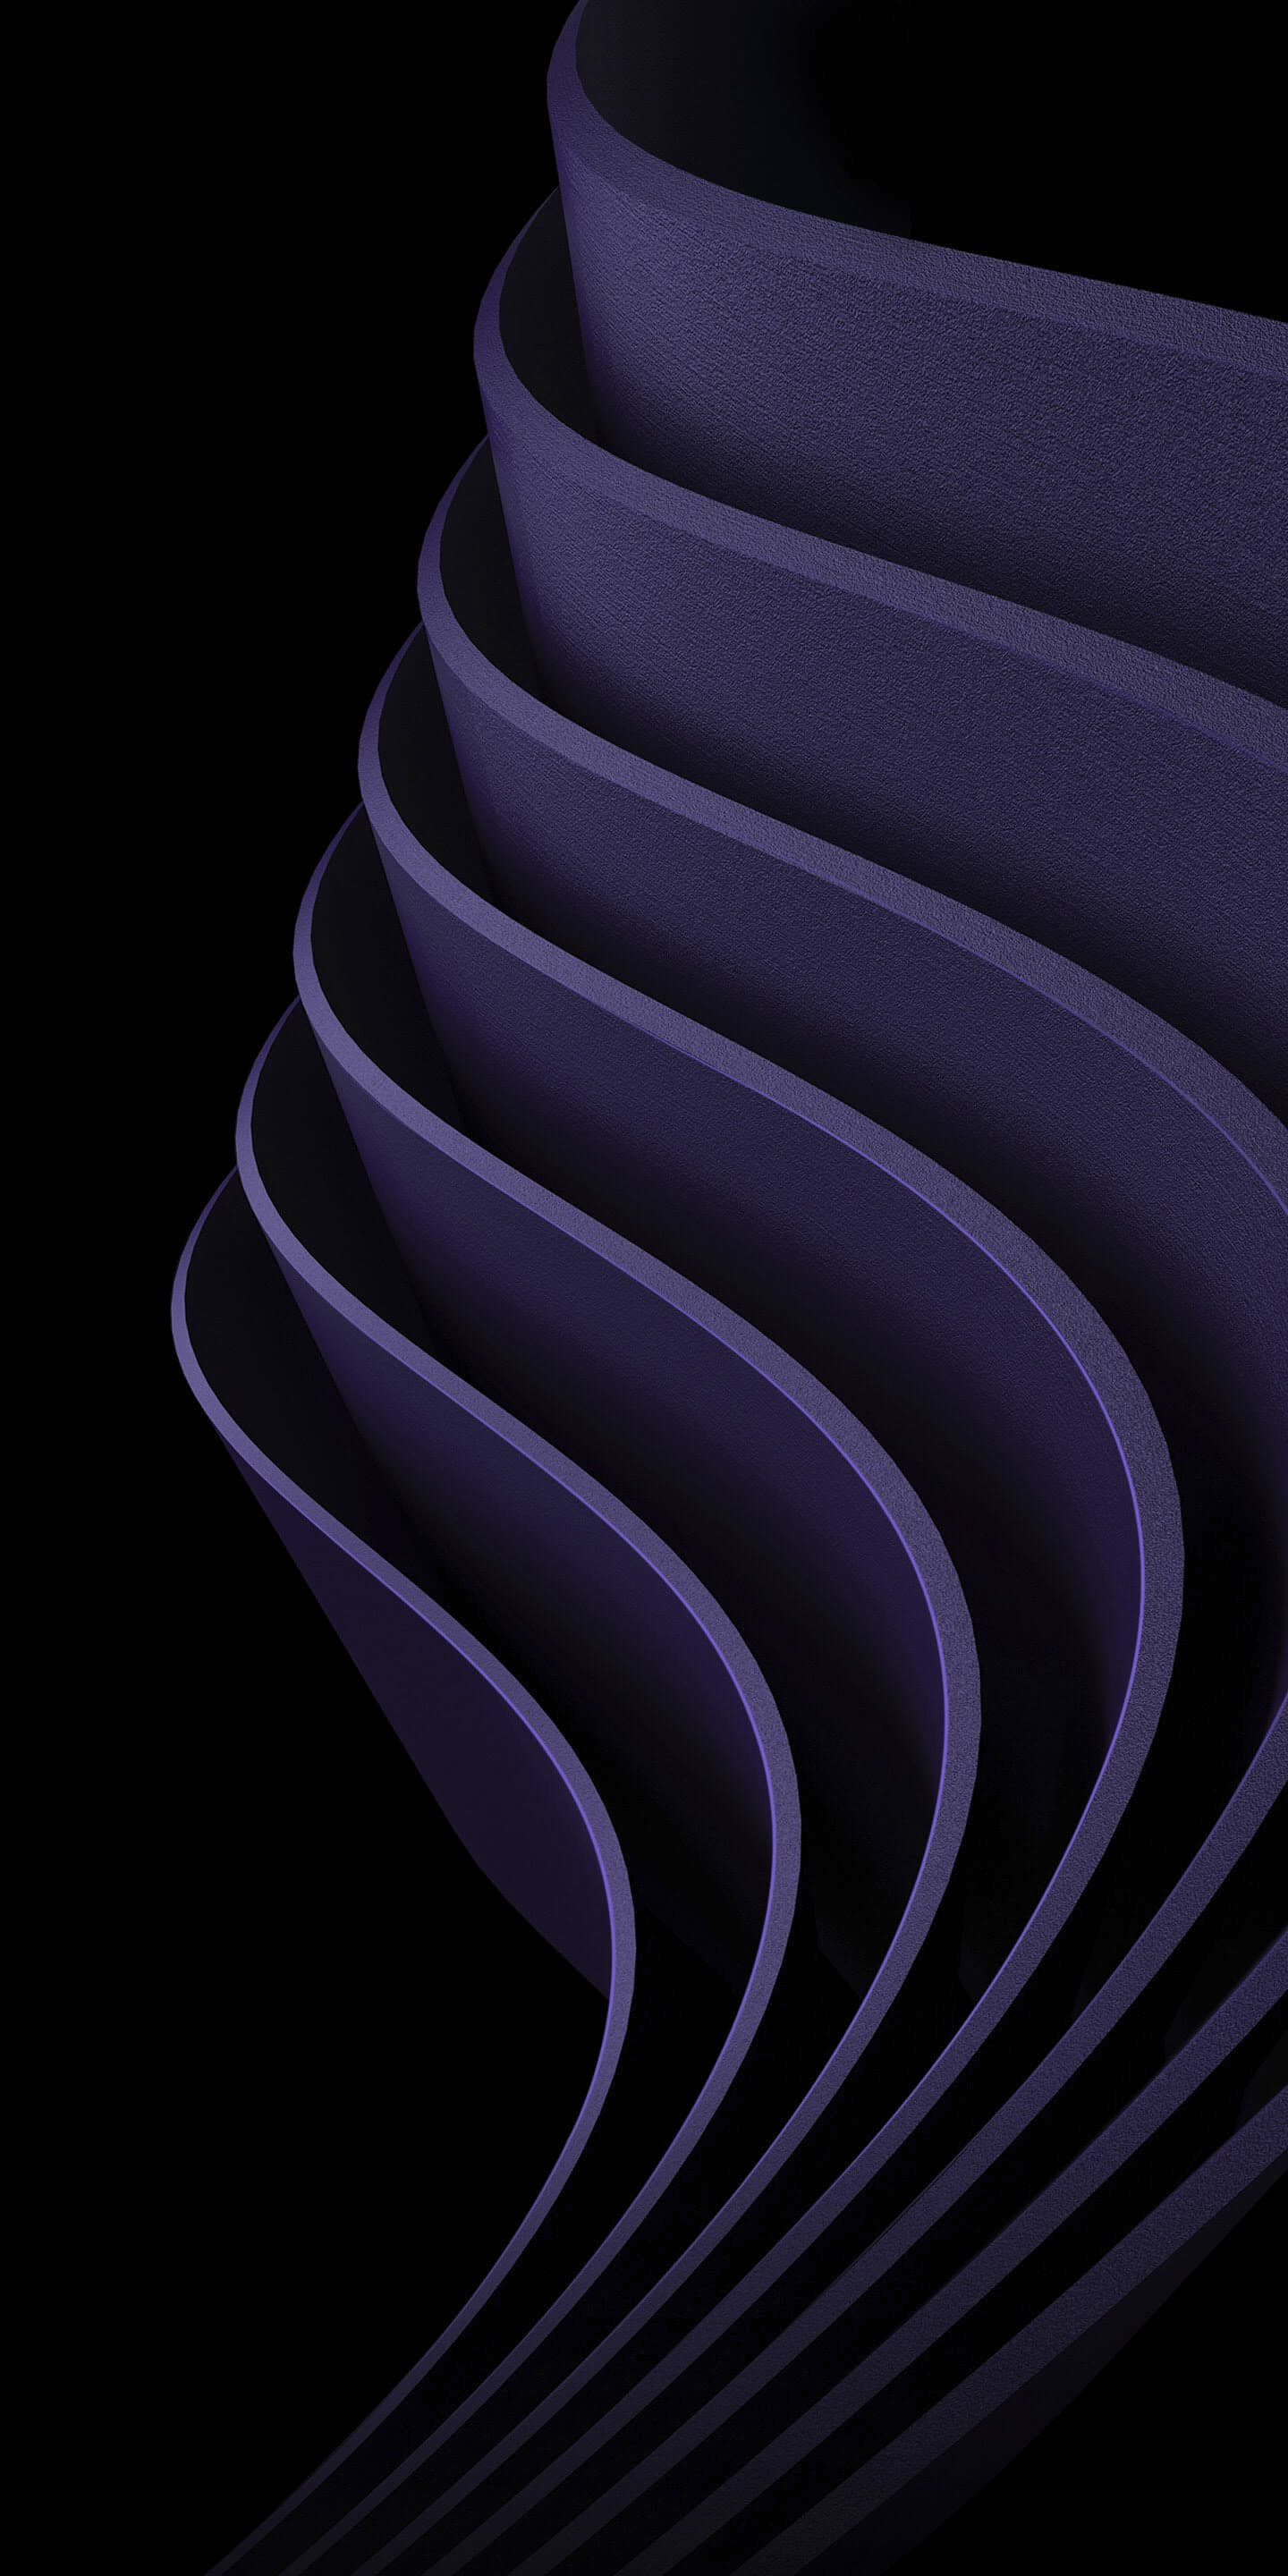 iphone oled wallpaper idownloadblog purple ridges